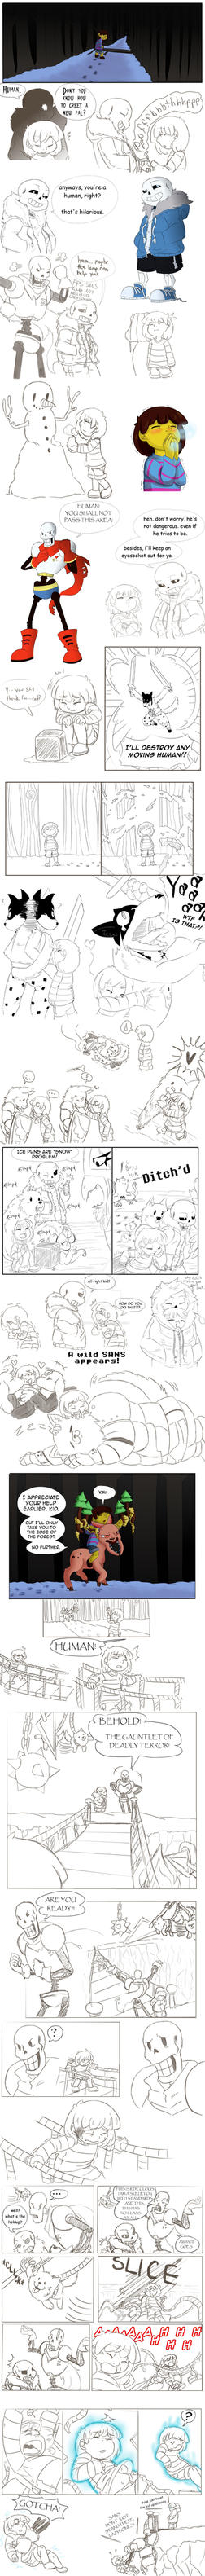 Undertale Dump: Snowdin (Part 1) by Episodic89